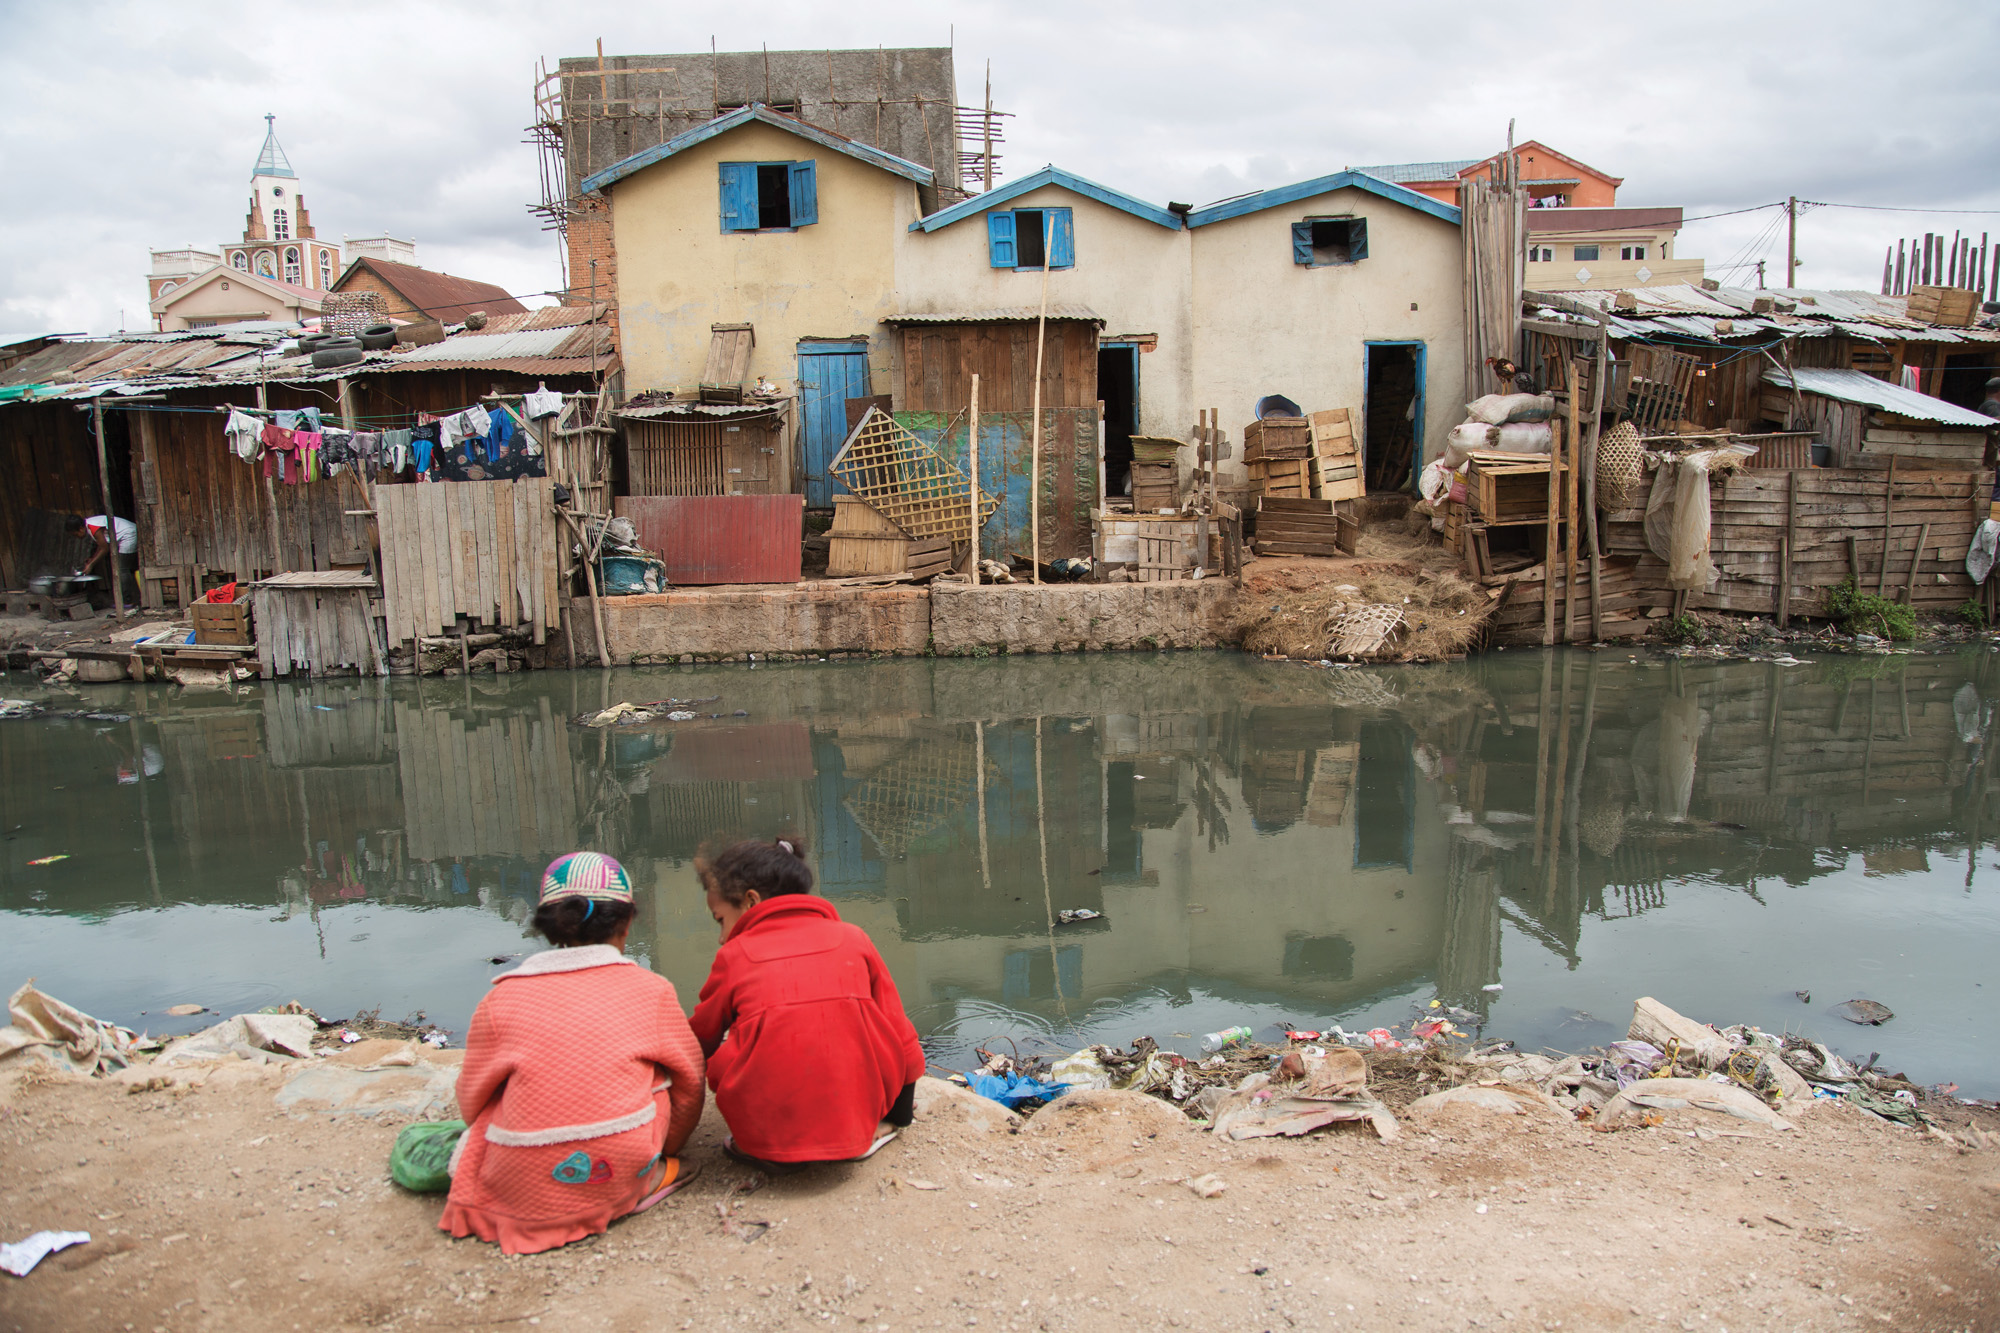 http://staging.skoll.org/wp-content/uploads/2015/01/Pollution-in-Antananarivo.jpg